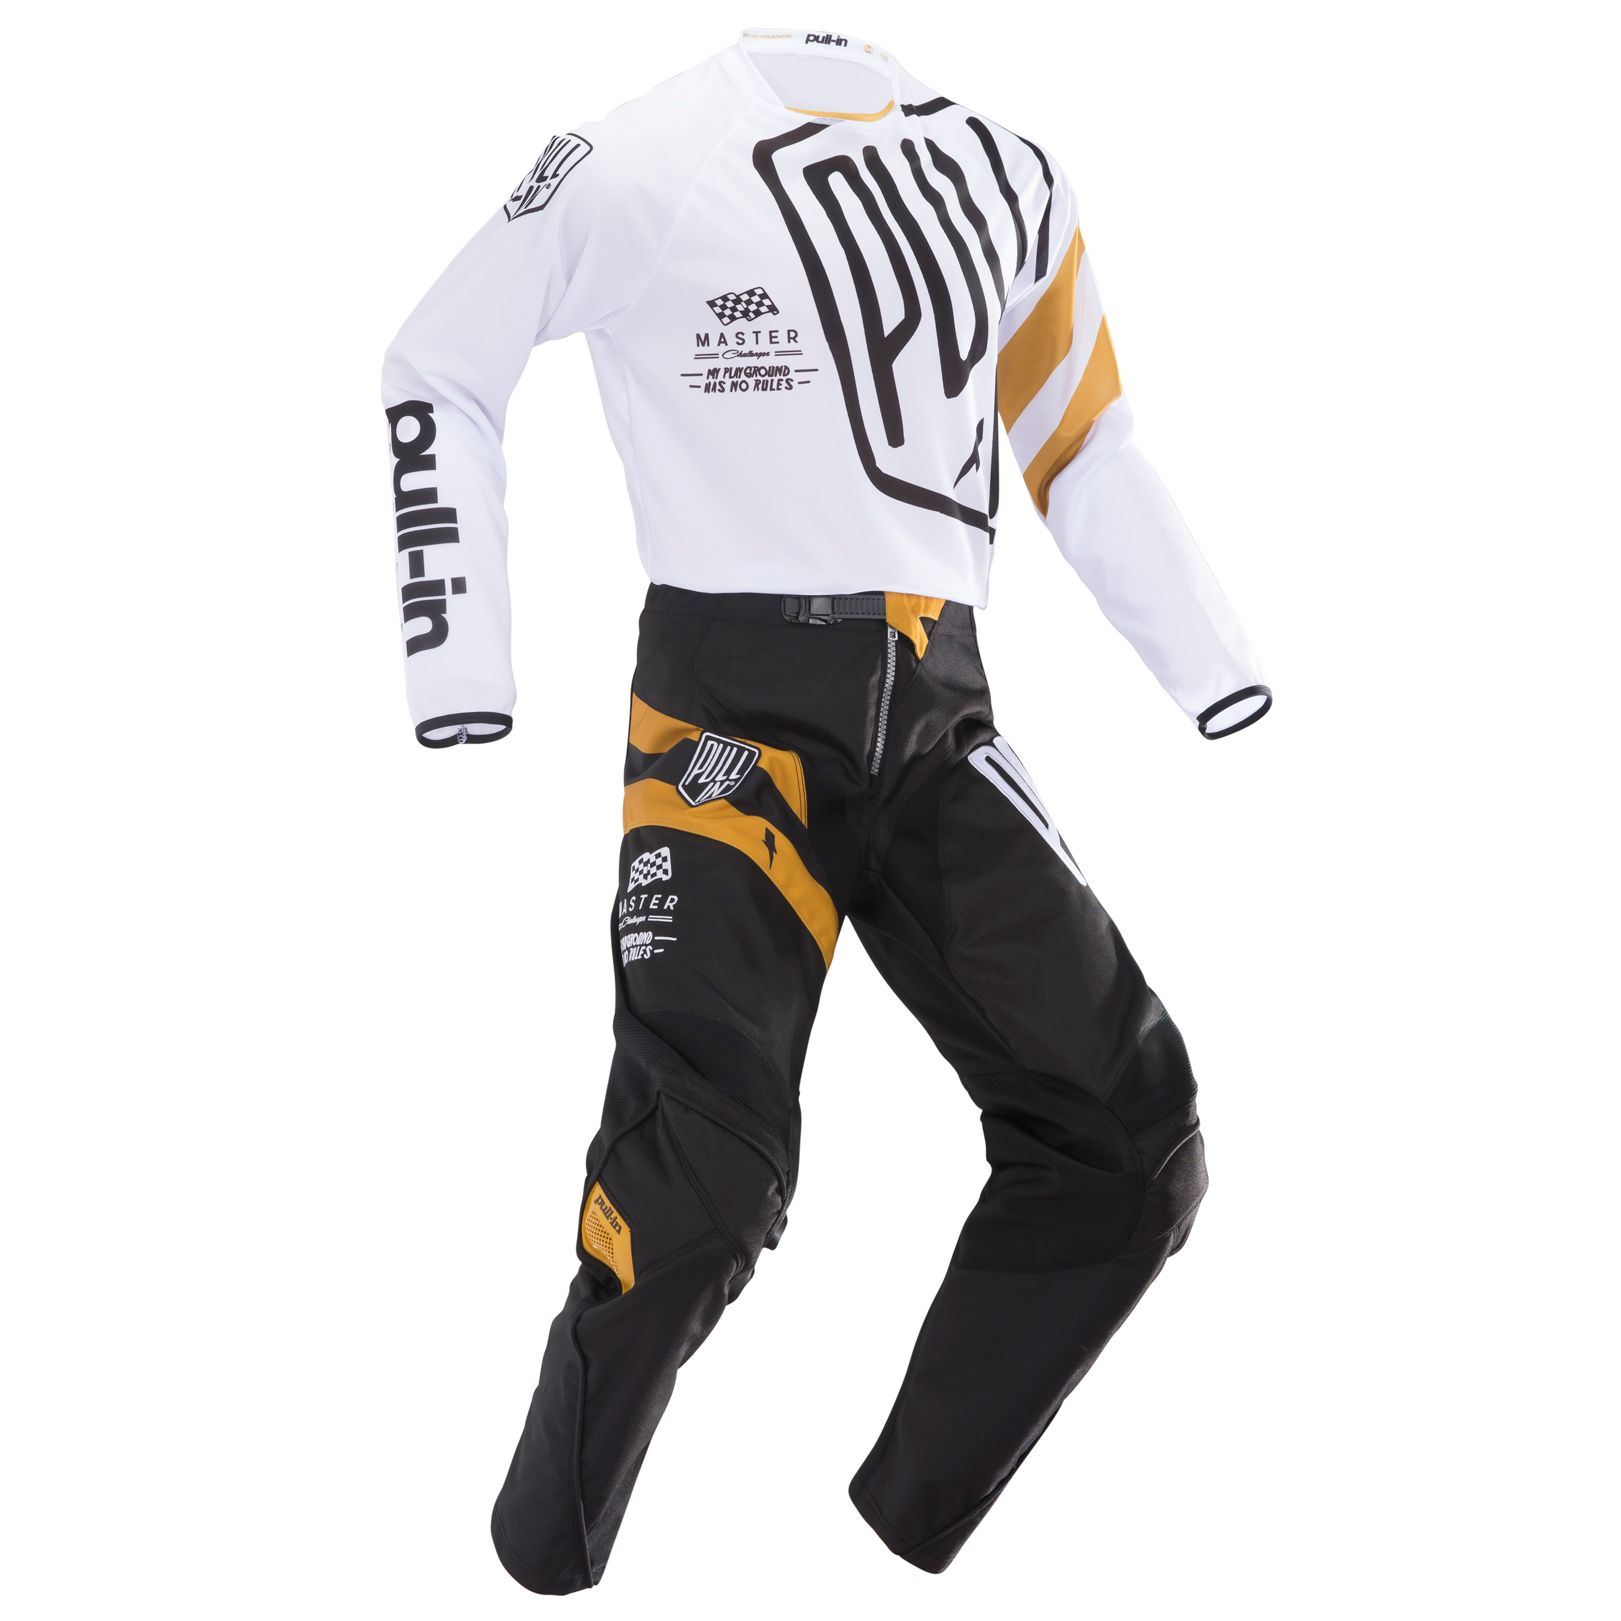 195-9006030-84 Pull-In 2019 Challenger Master Black Gold Motocross Pant Enduro Crossbroek Pantalon Hose